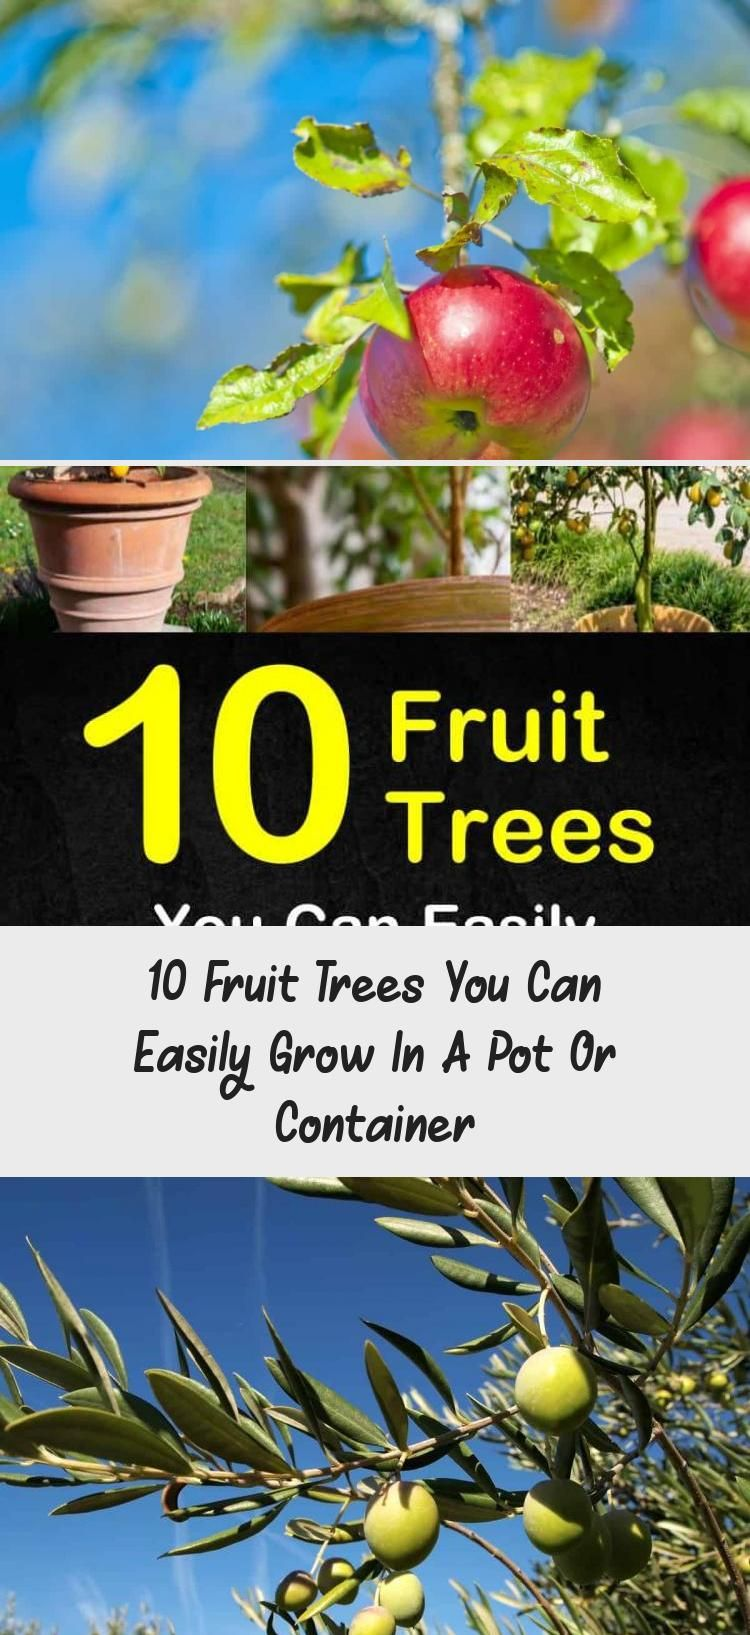 10 Fruit Trees You Can Easily Grow In A Pot Or Container Containergardeningtexas Verticalcontainerga Fruit Trees Fruit Trees In Containers Fast Growing Trees